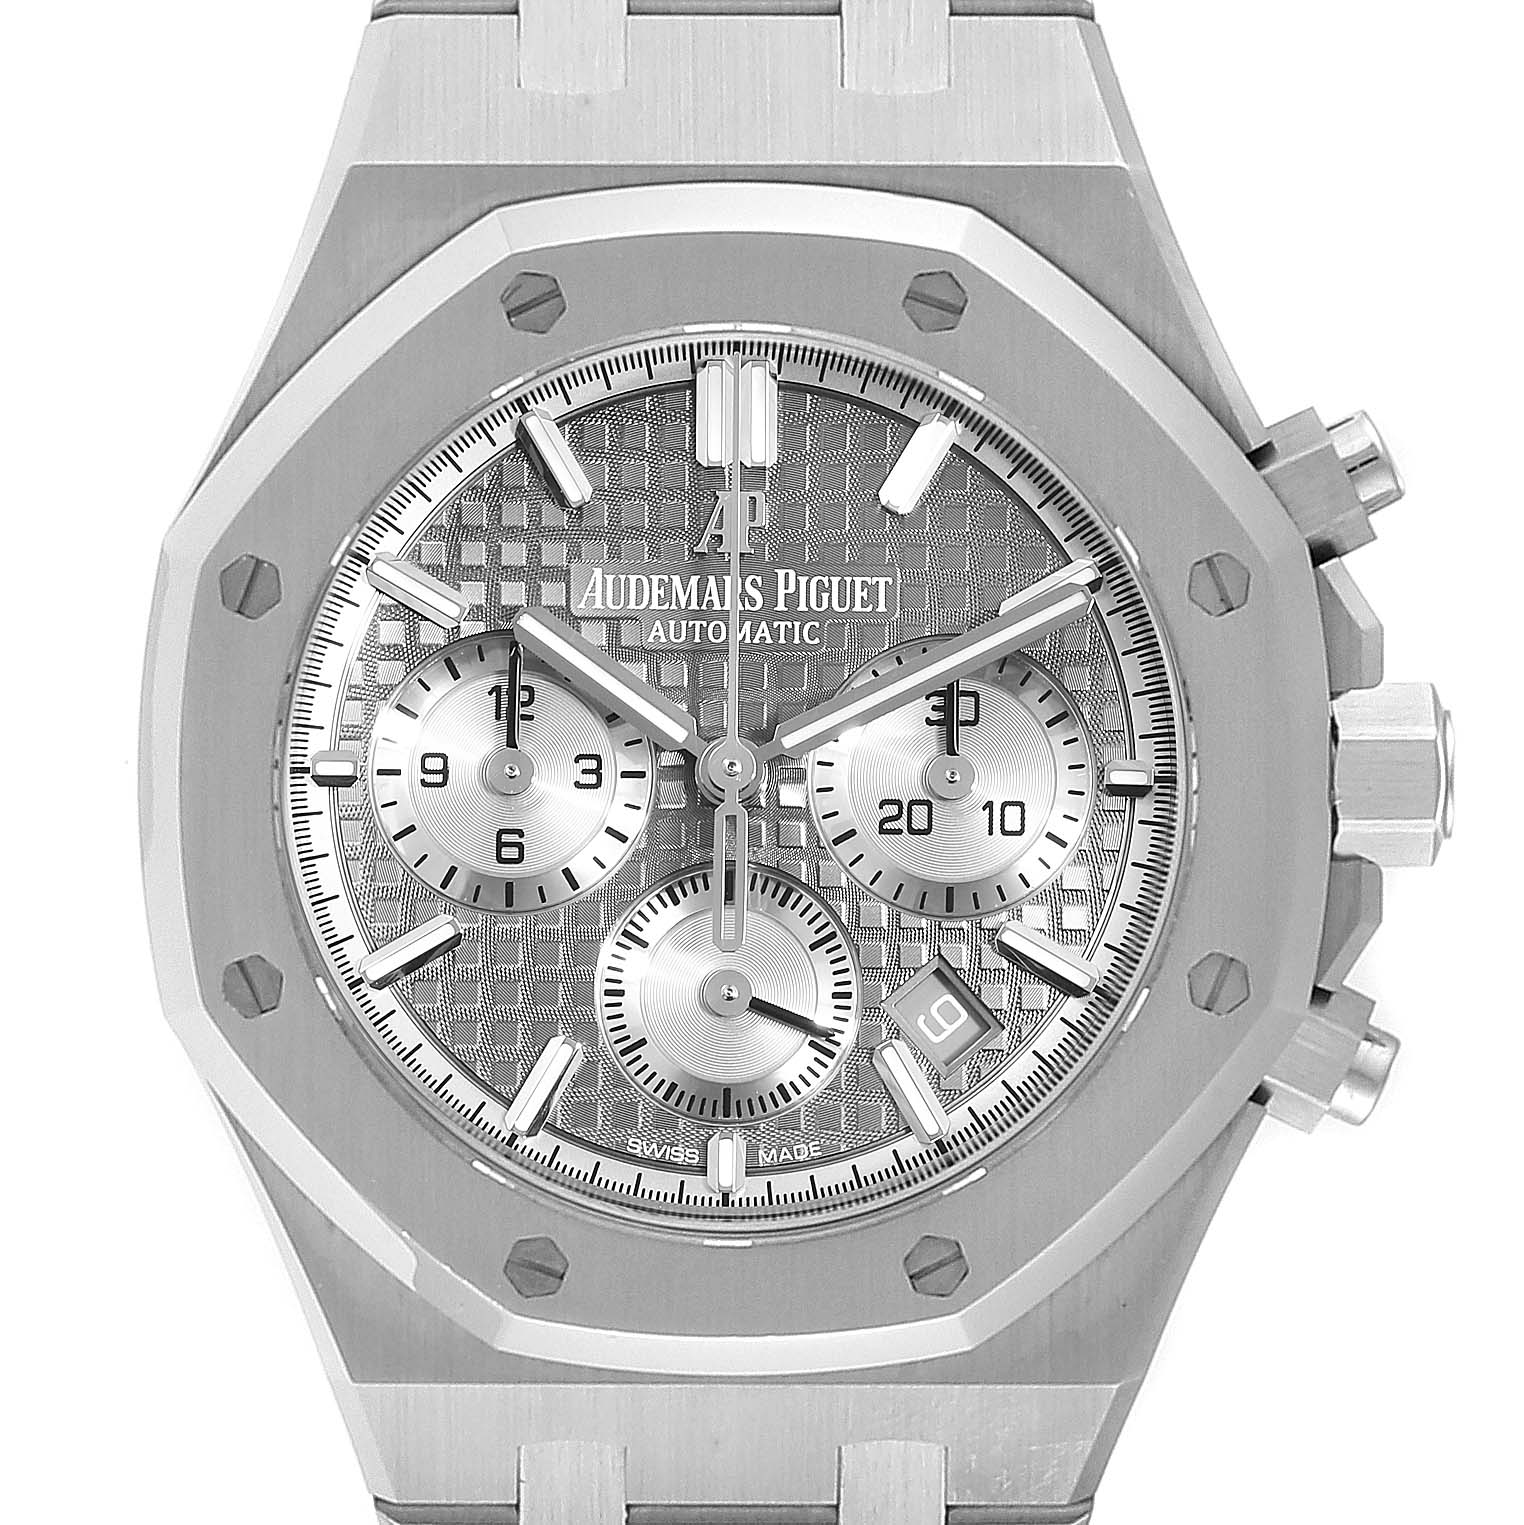 Audemars Piguet Royal Oak 38mm Chronograph Mens Watch 26315ST Box Card